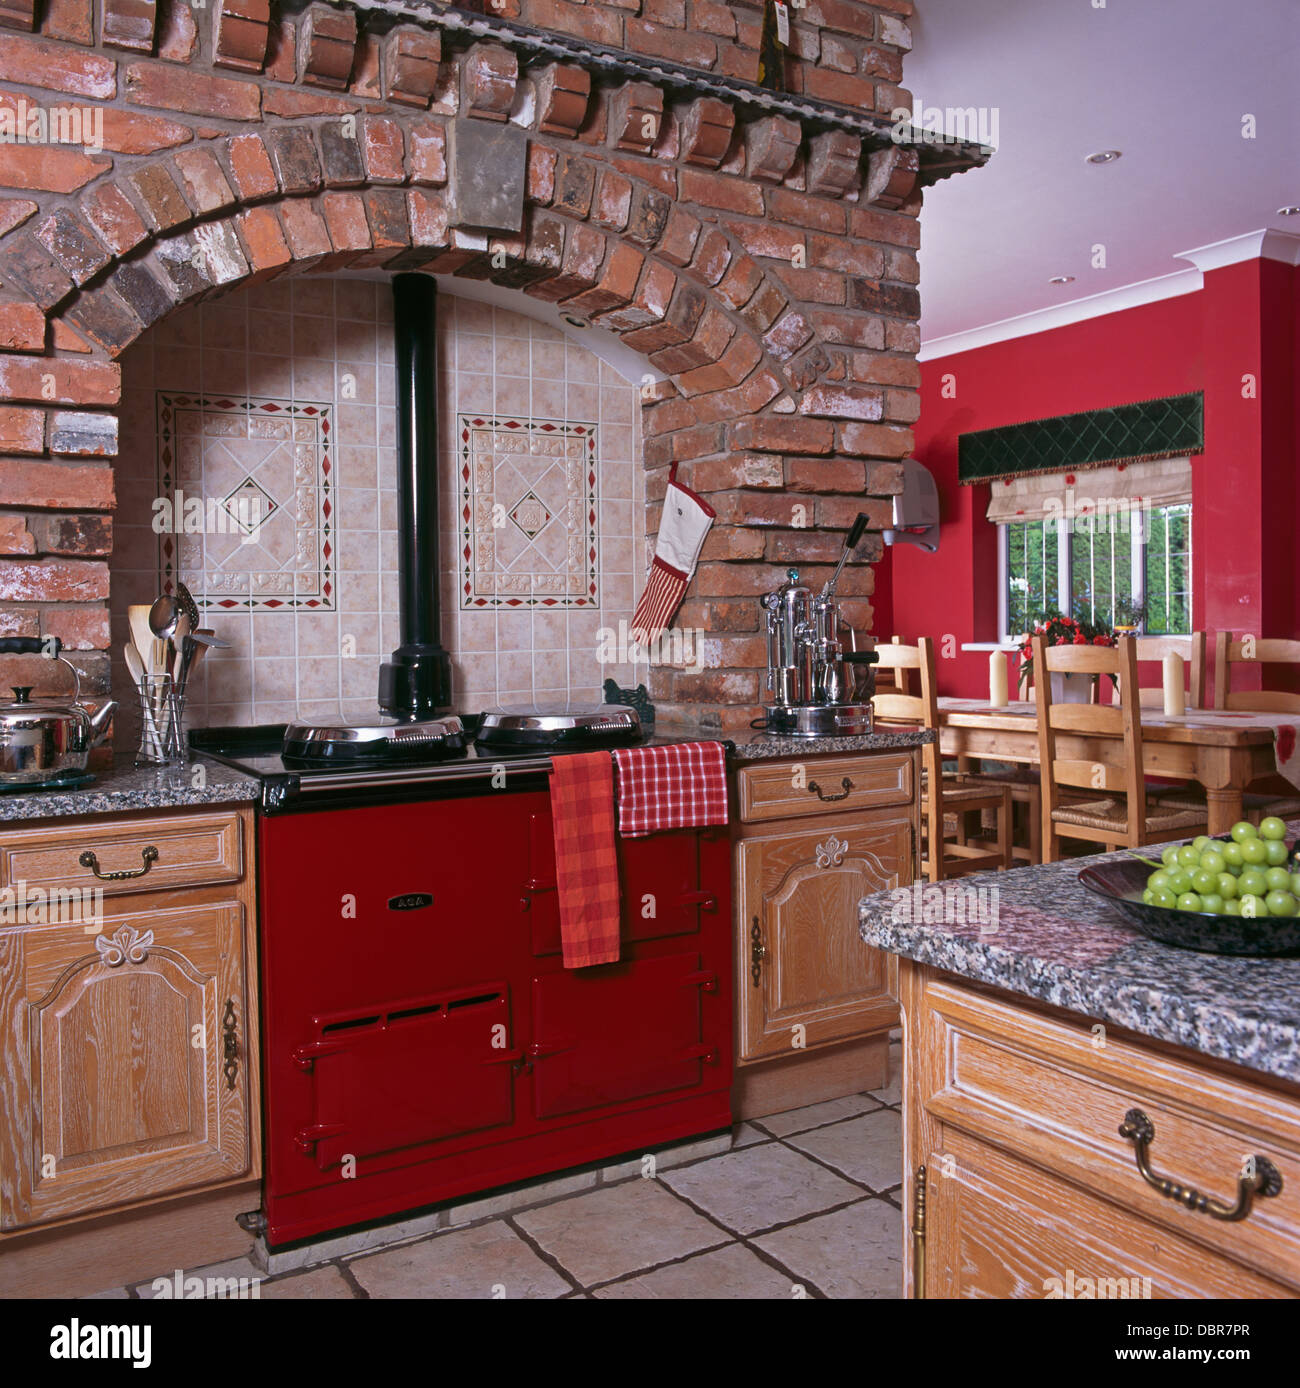 Exposed Brick Wall And Ceramic Wall Tiles Above Red Aga Oven In Large Red Country Kitchen